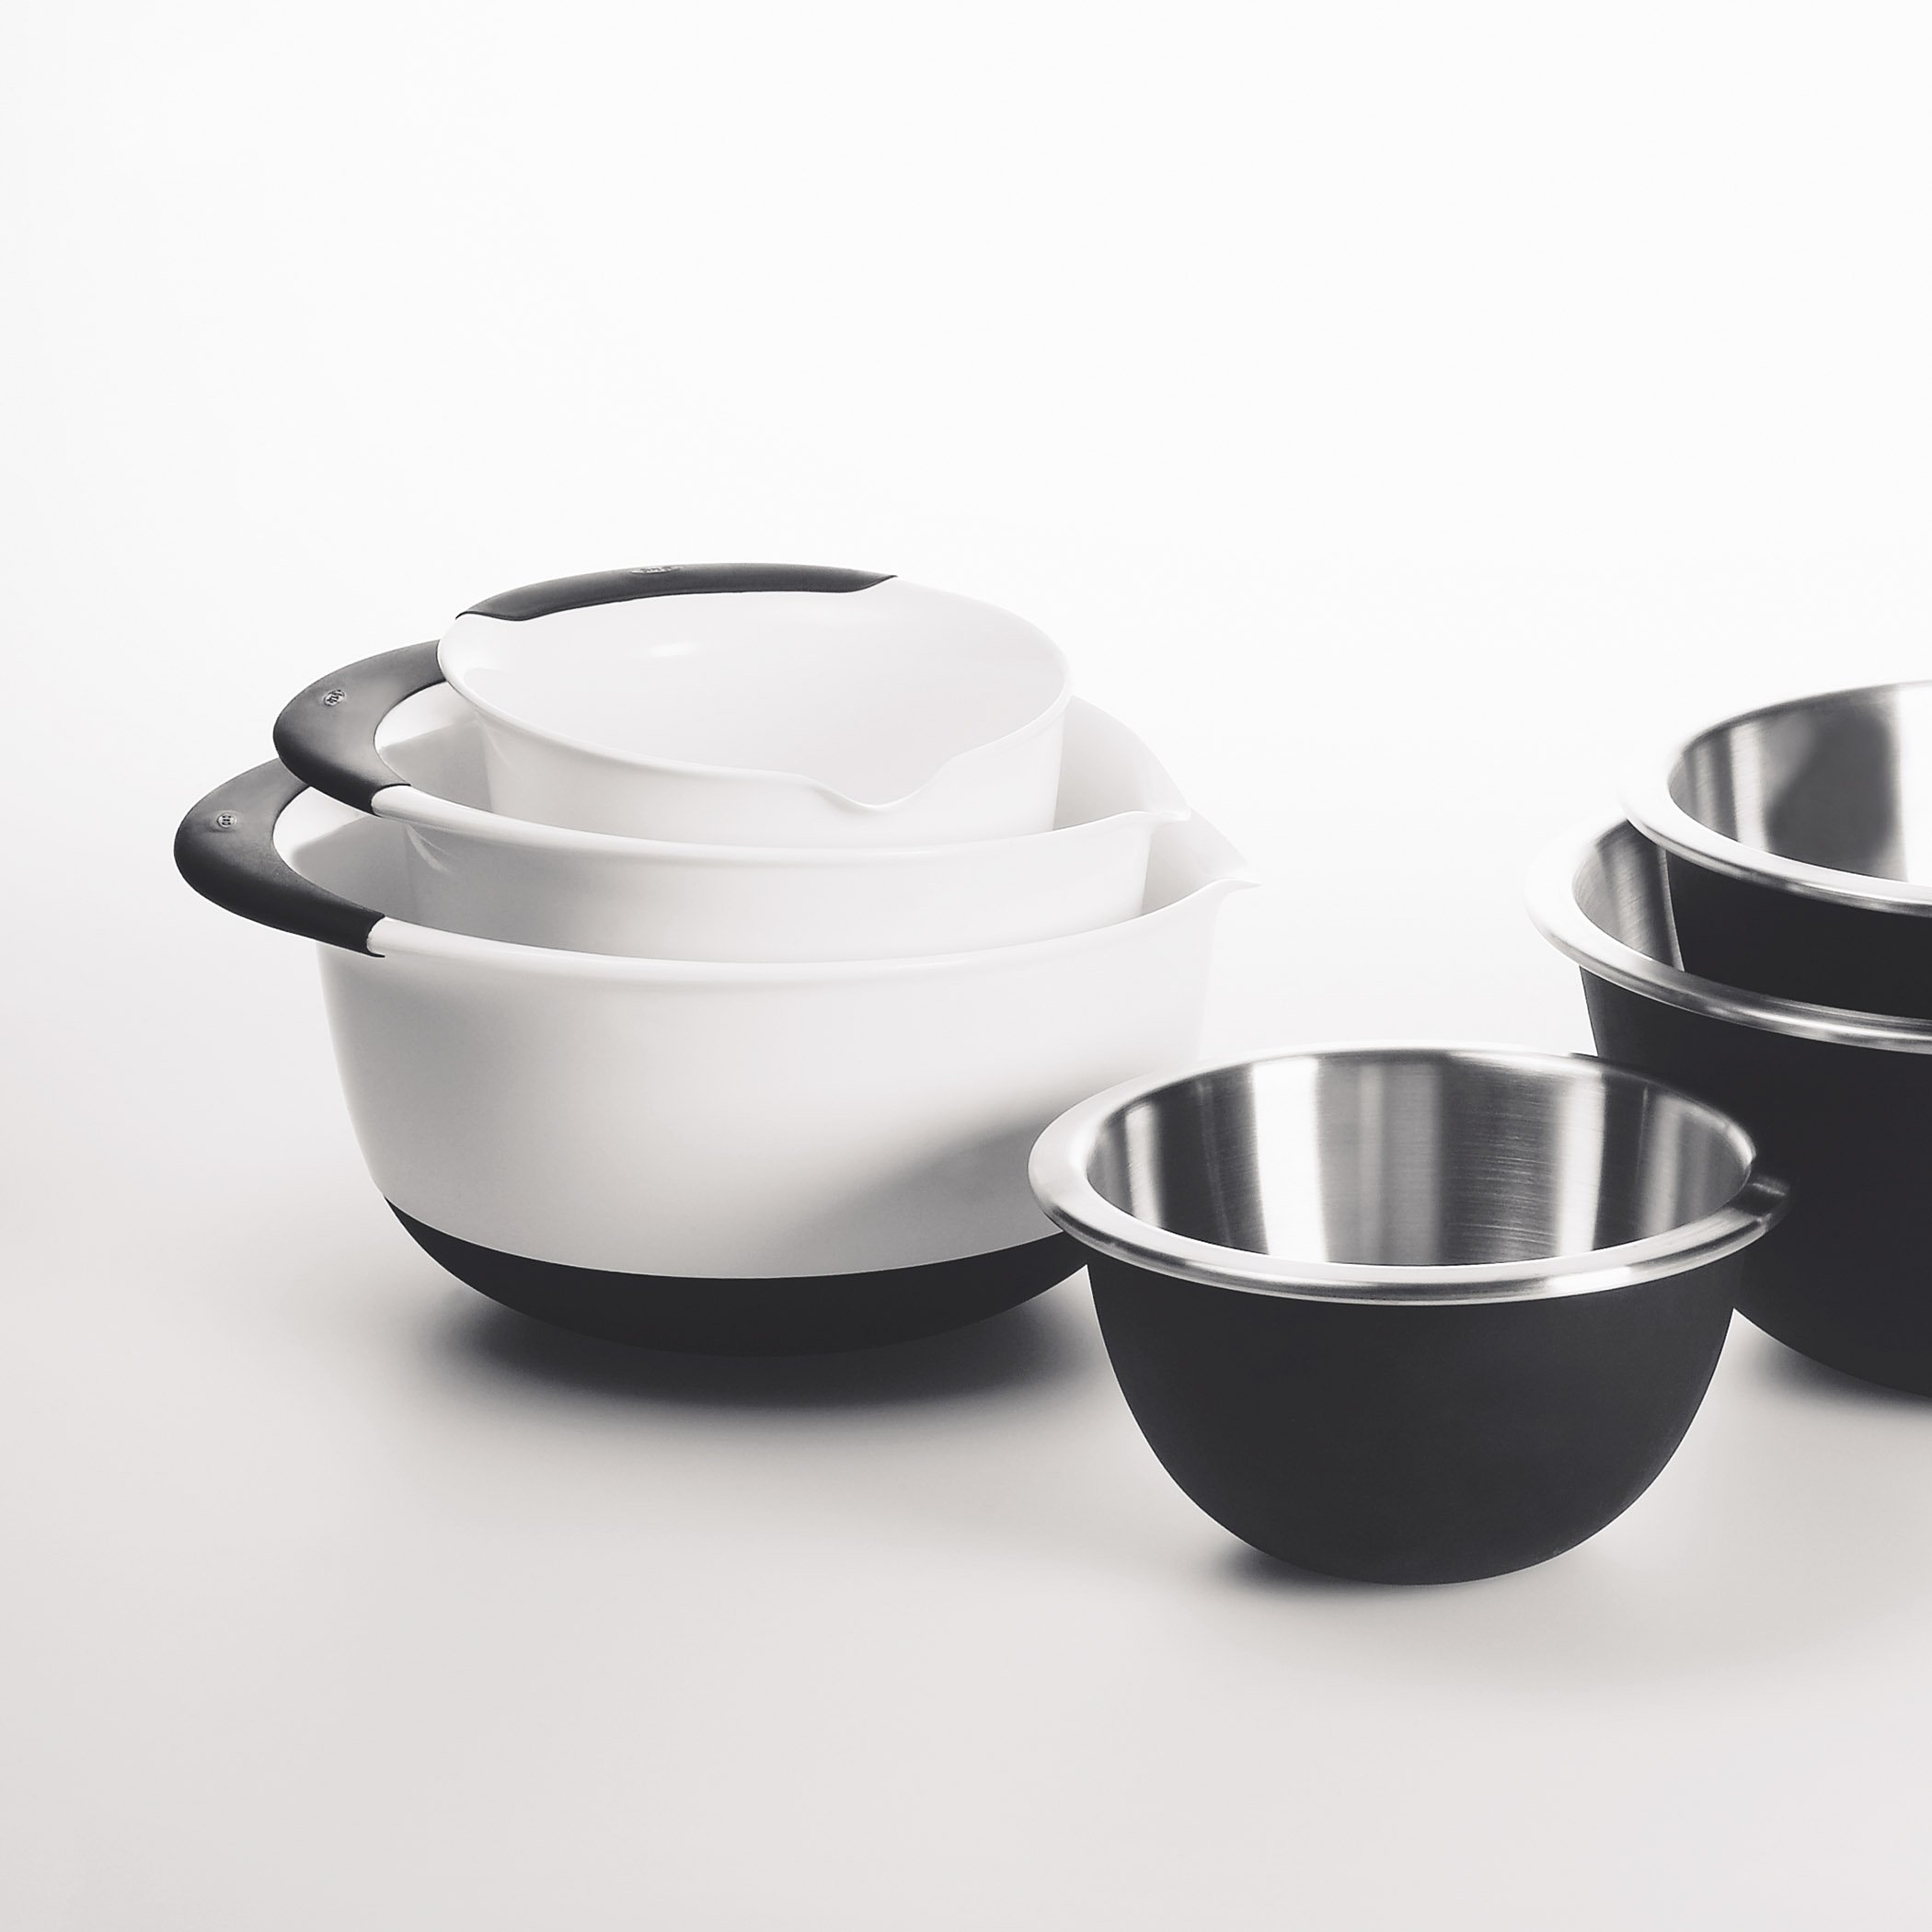 OXO Good Grips Mixing Bowl Set with Black Handles, 3-Piece by OXO (Image #4)